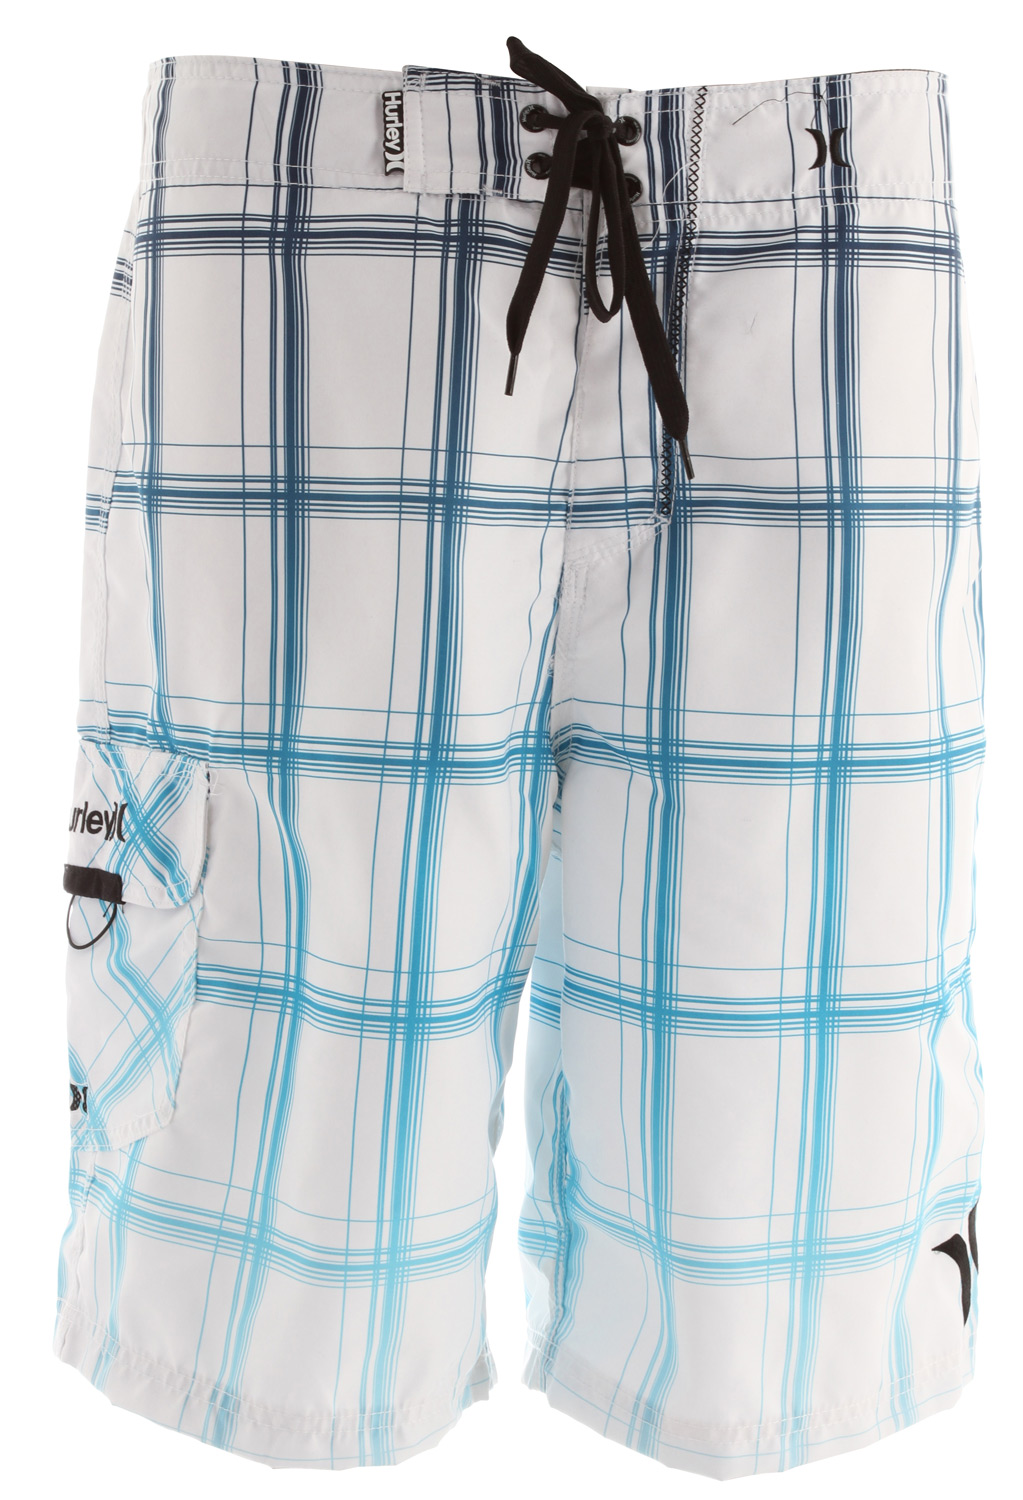 Surf Key Features of the Hurley Puerto Rico Blend Boardshorts: 22 Outseam Recycled Supersuede Patented EZ fly closure, embroidered logos, patch pocket with Velcro flap - $36.95